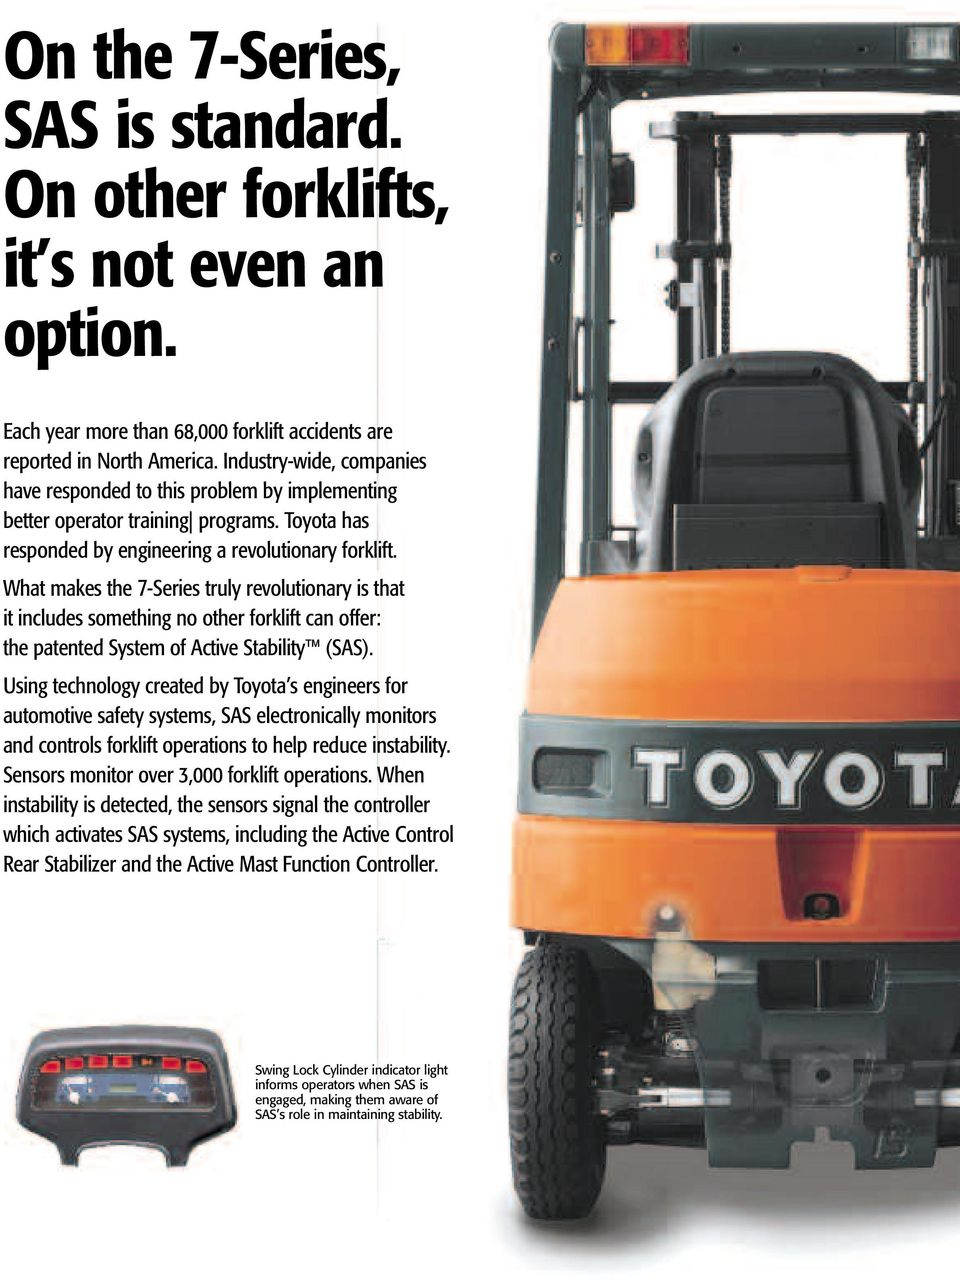 What makes the 7-Series truly revolutionary is that it includes something no other forklift can offer: the patented System of Active Stability (SAS).